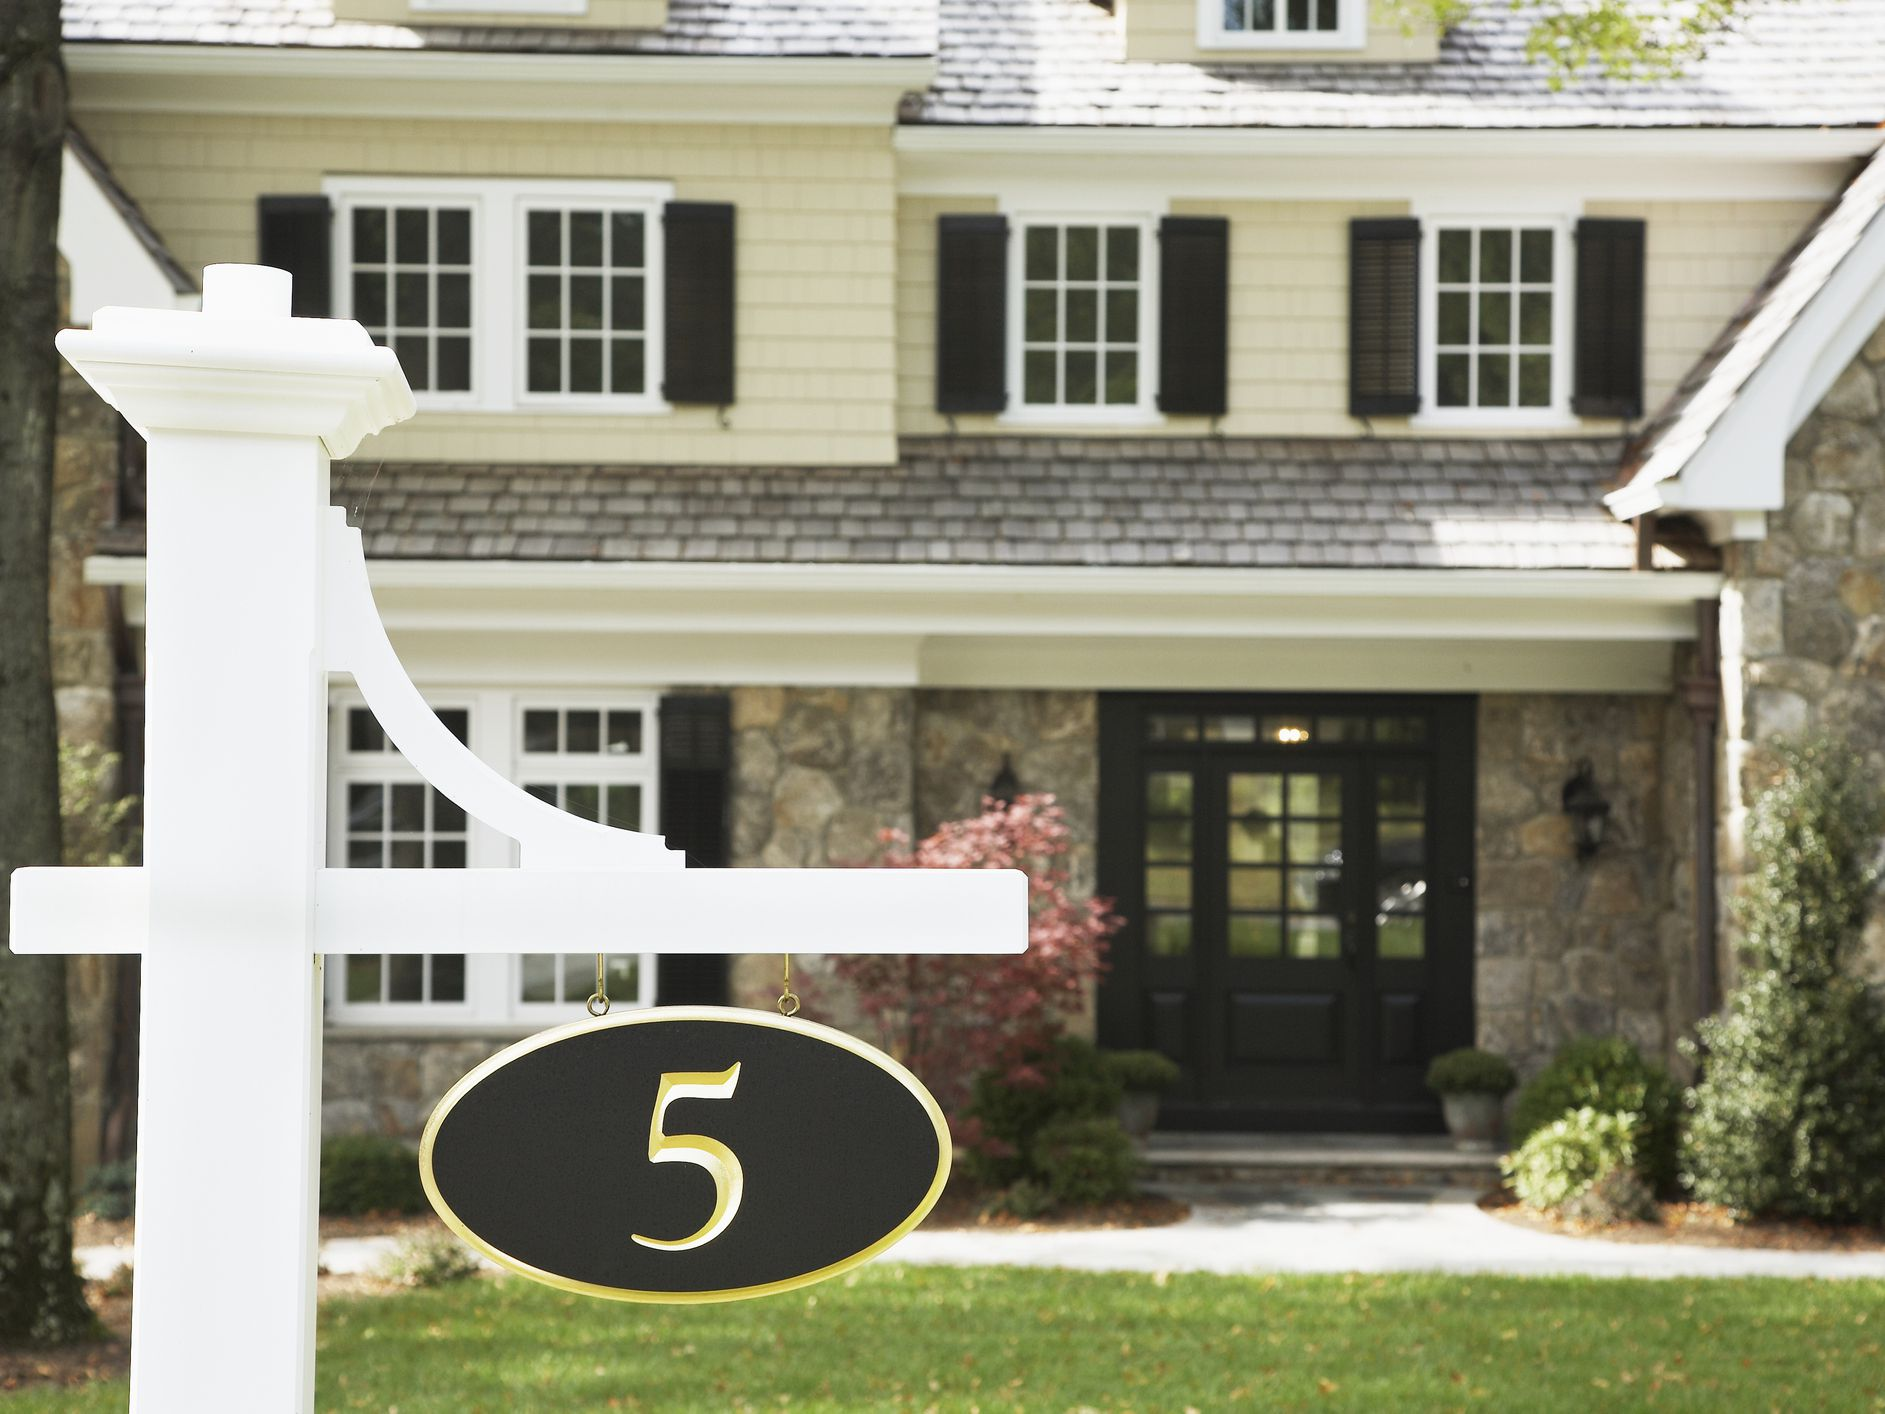 What Numbers Have Good Feng Shui for a Home?